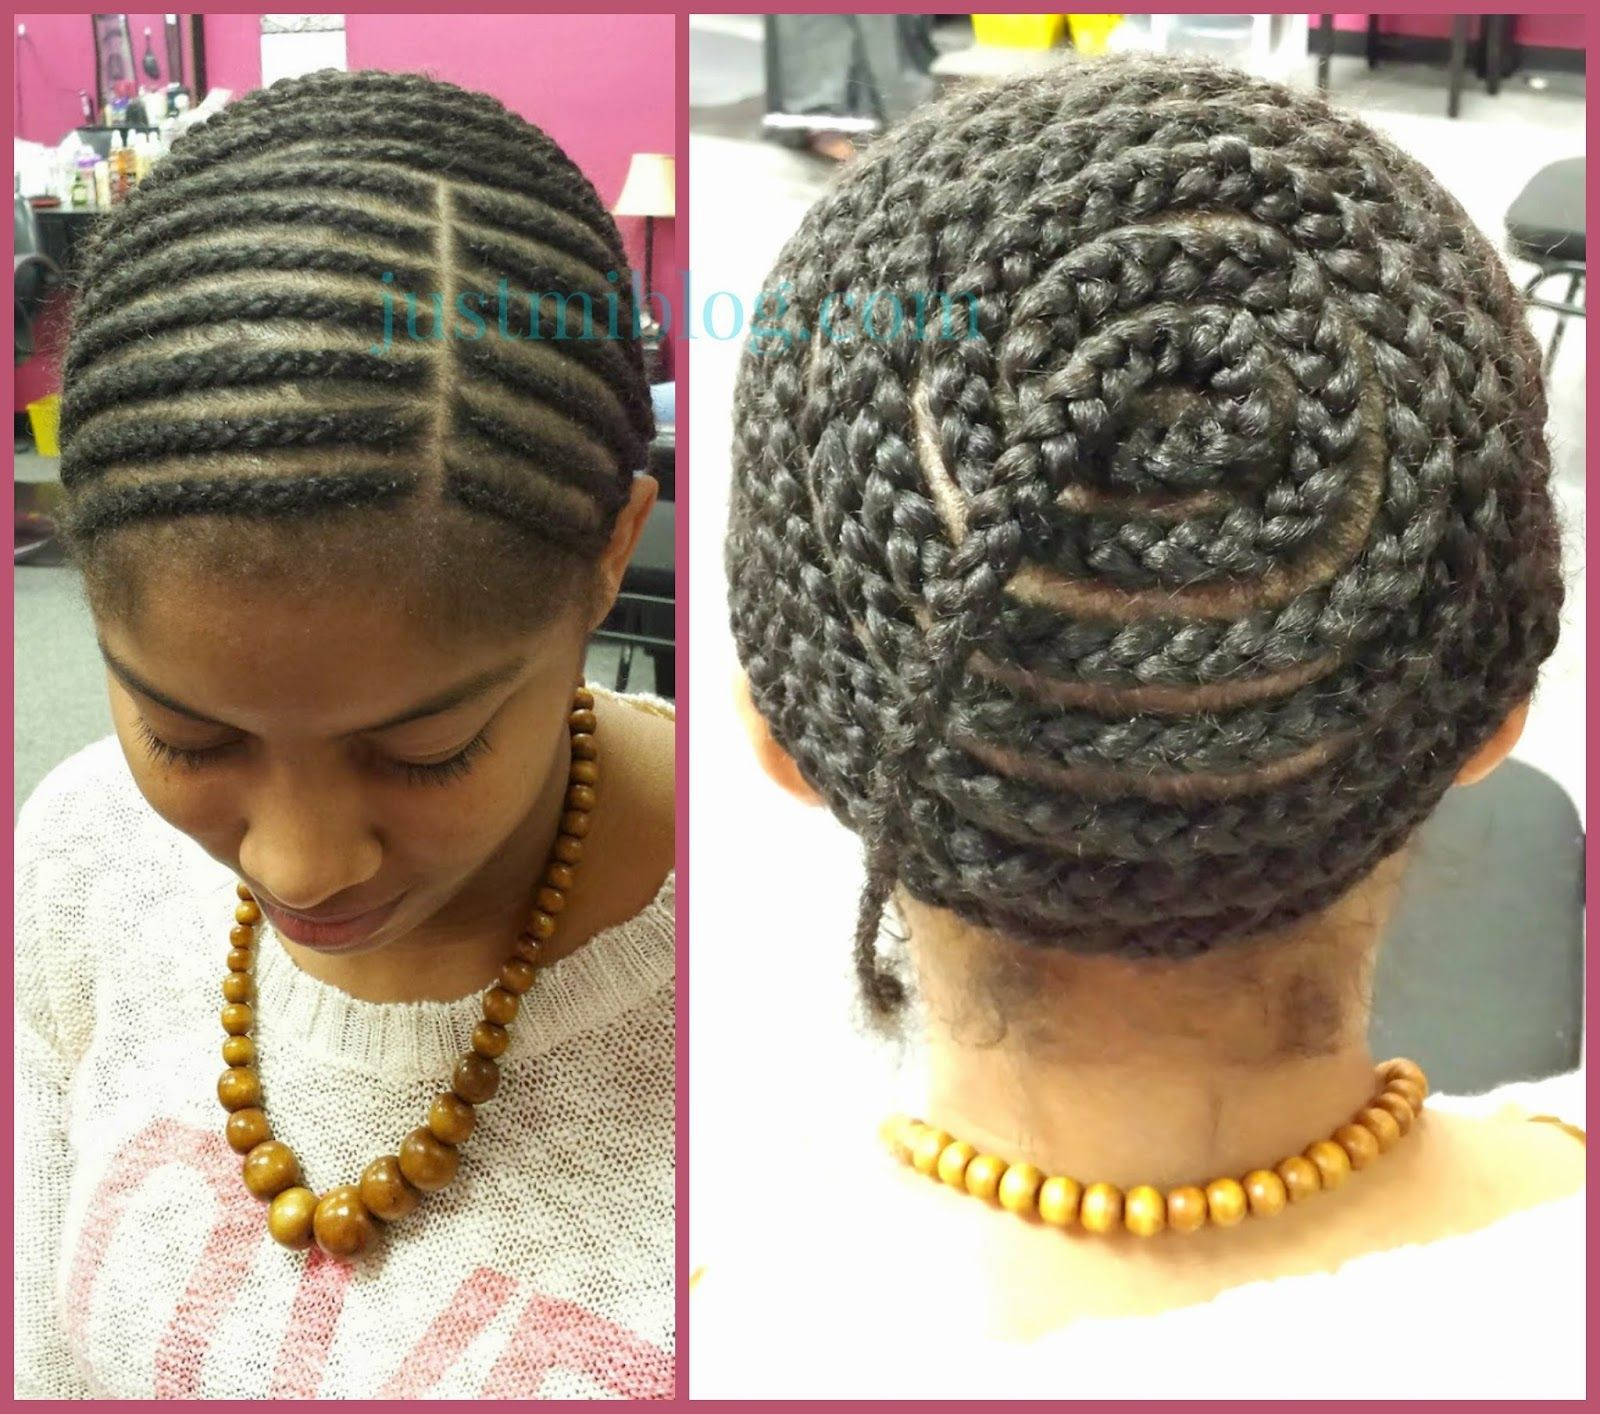 The Braid Structure For A Full Sewin With A Lace Closure The - Diy braid pattern